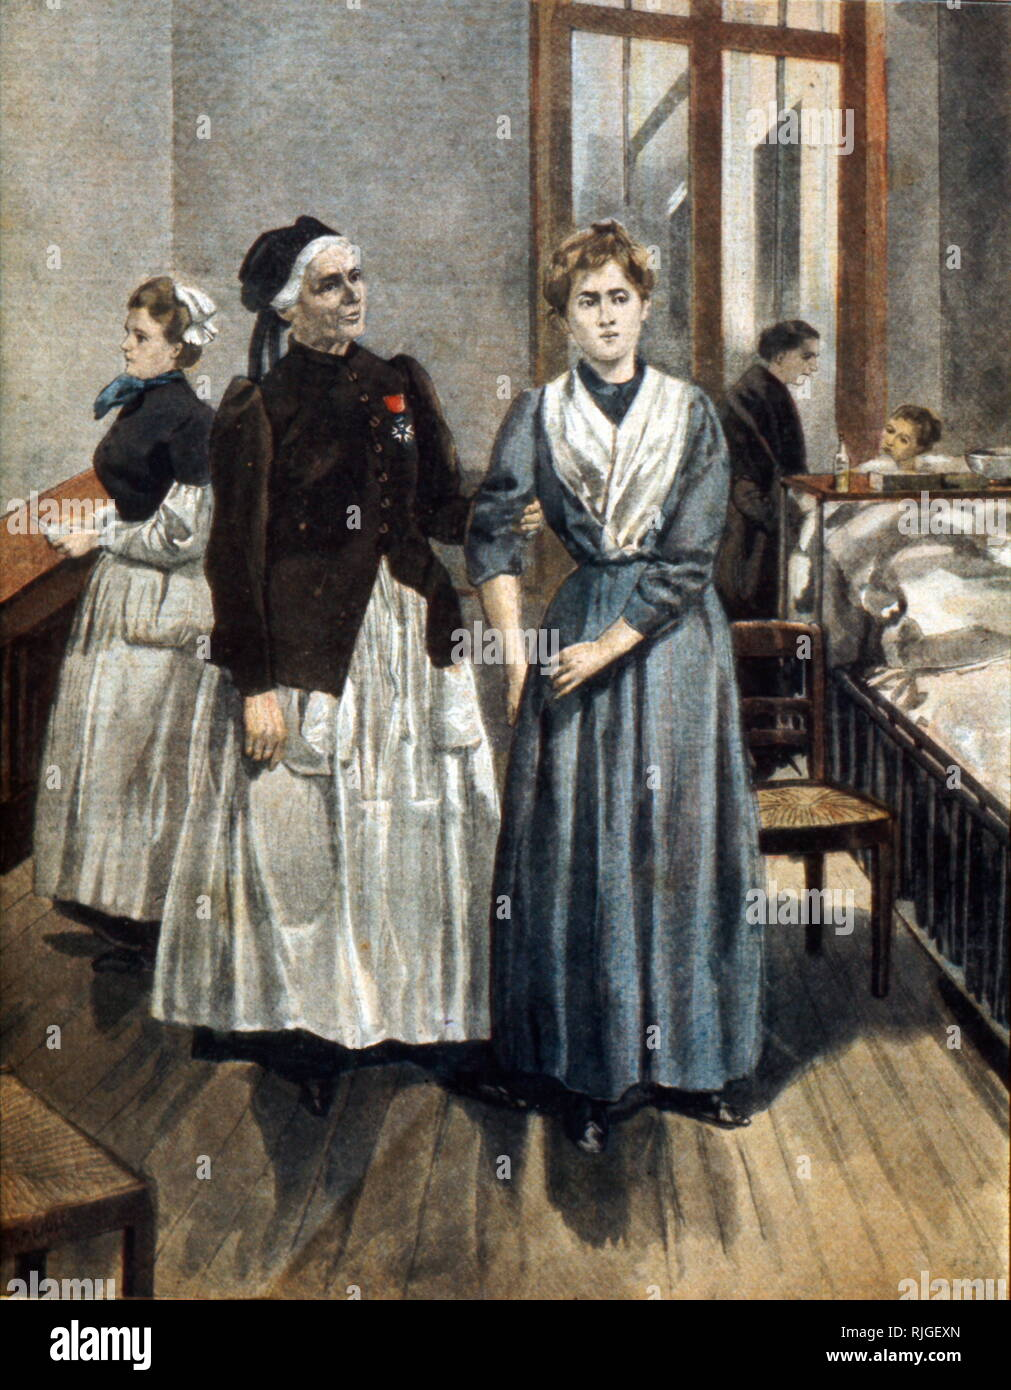 Nurse Marguerite Bottard (1822-1906) (who worked with Jean-Martin Charcot), at the Paris Psychiatric Hospital 1841 - Stock Image